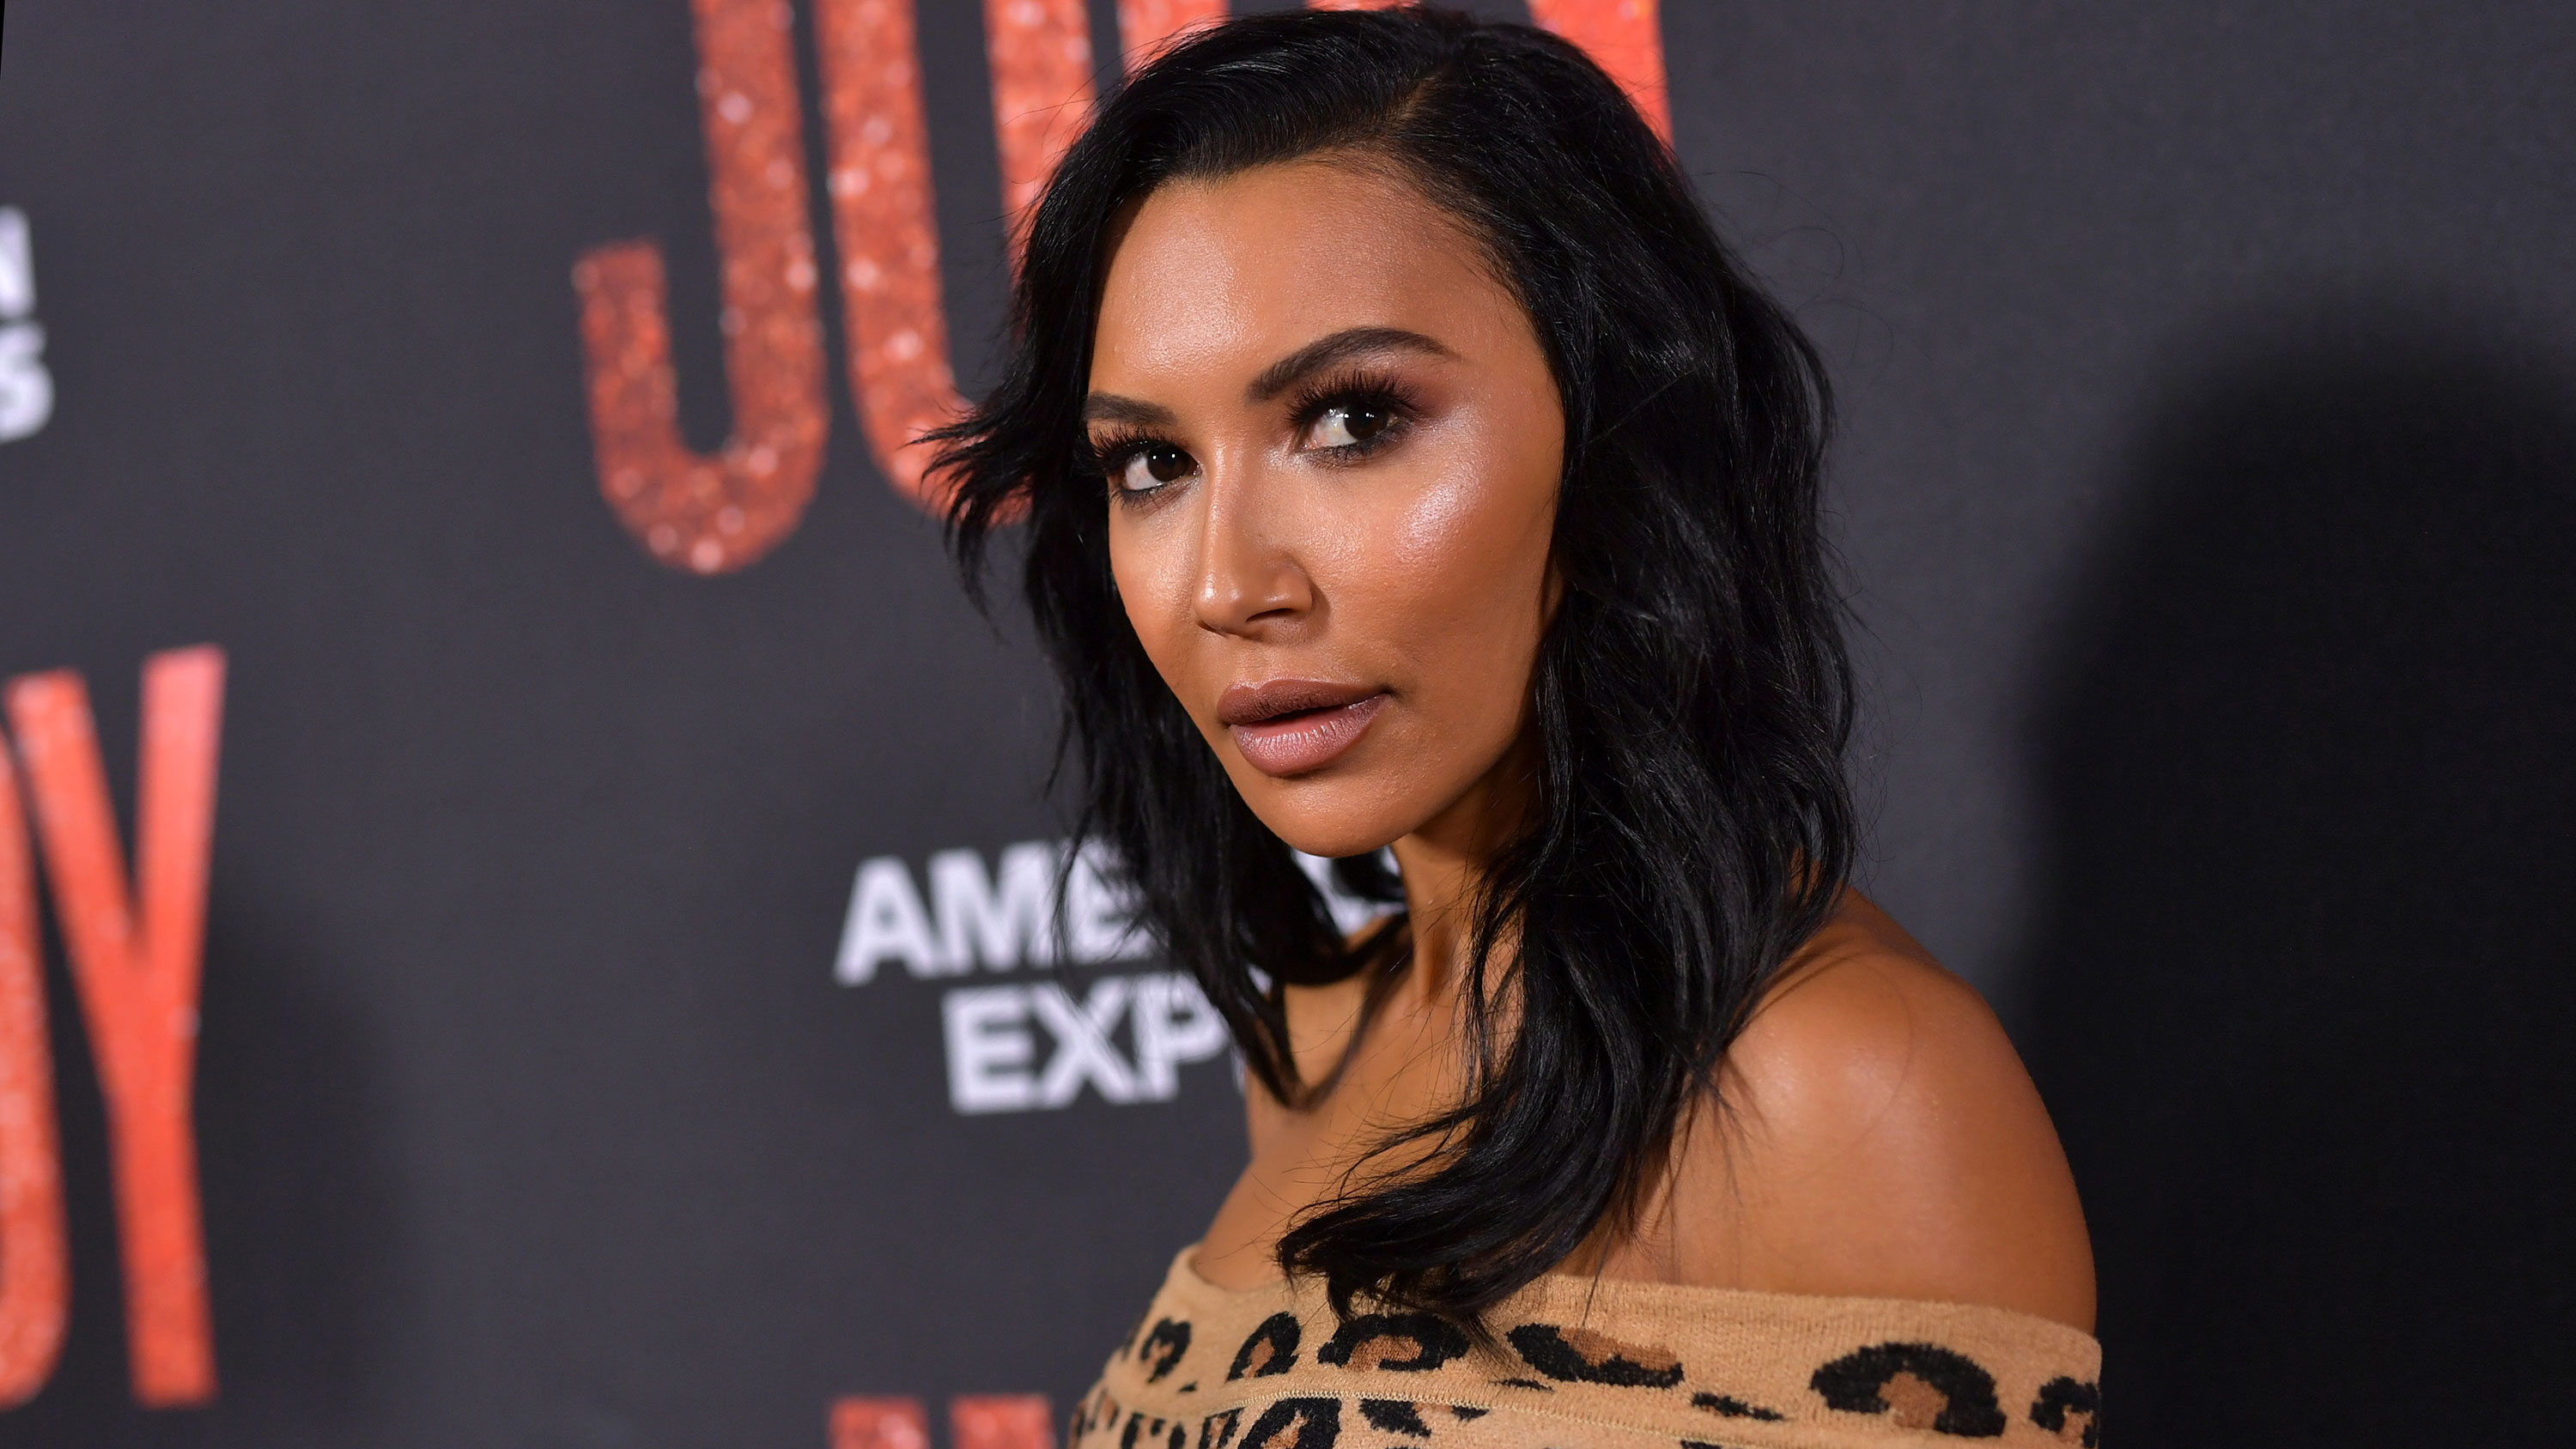 'Glee' star Naya Rivera is laid to rest in a Hollywood Hills cemetery